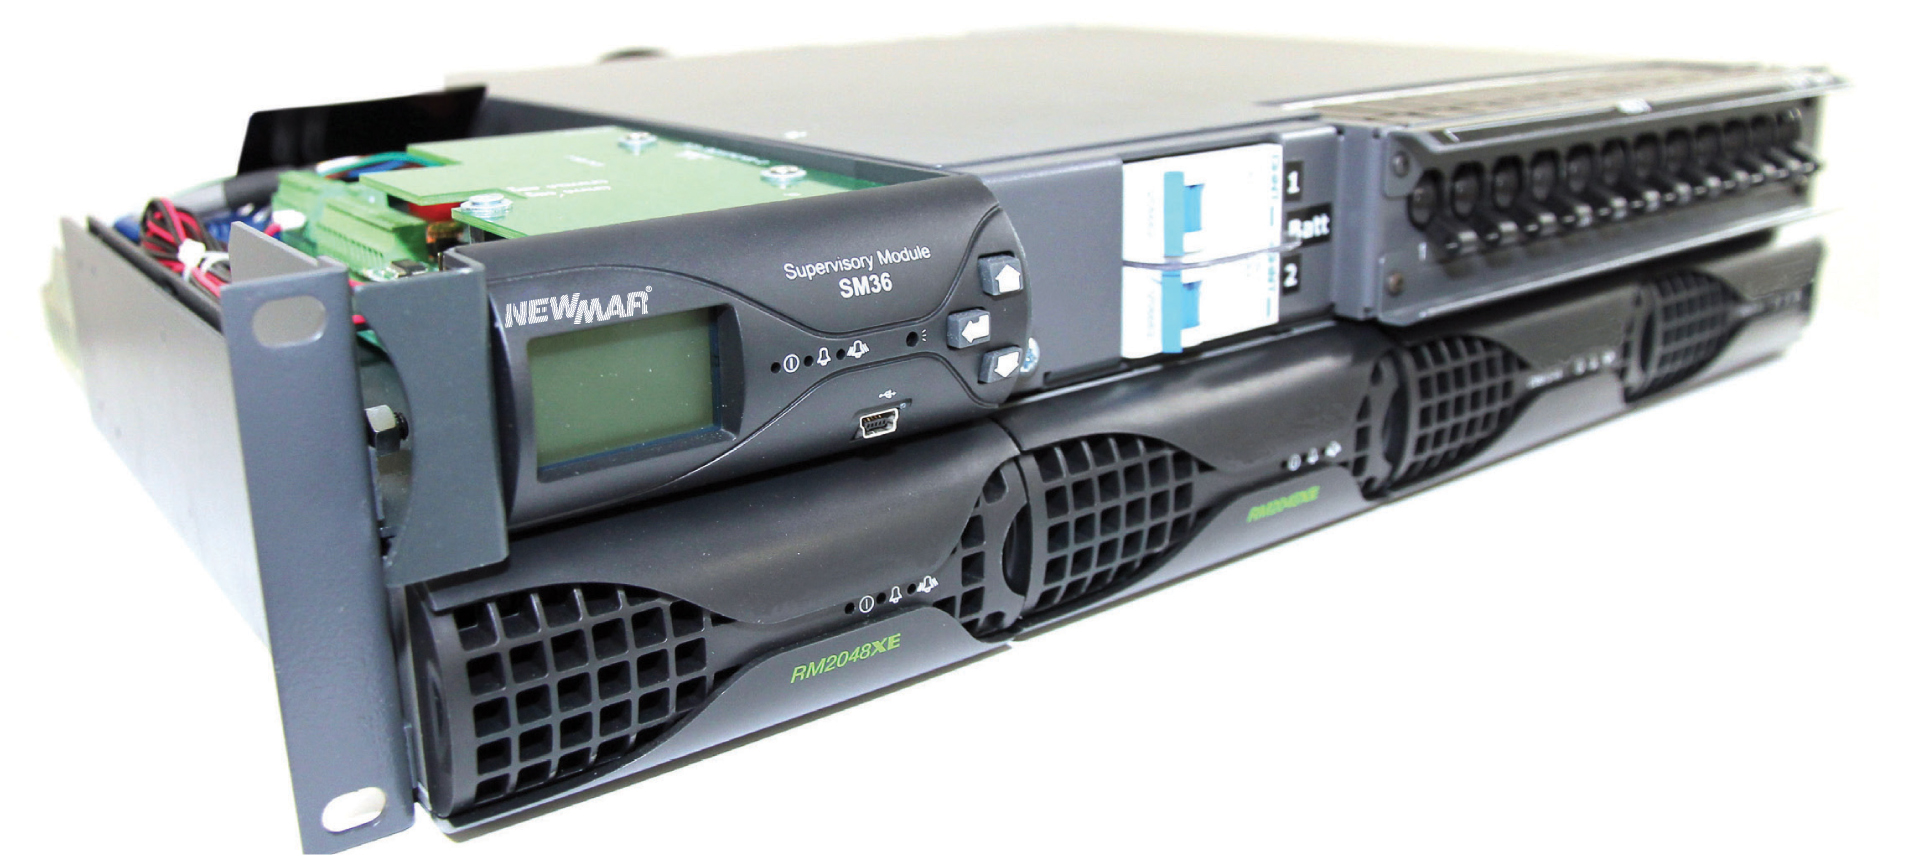 647 Dalle Tft Hitachi Sx14q004 Zz together with Centurion Iii Power System likewise Sup Cert Ce additionally 26 Cxa 0217 Tdk Inverter in addition 283 Ecran Lcd Agie Agietron At200. on lvd wall mount